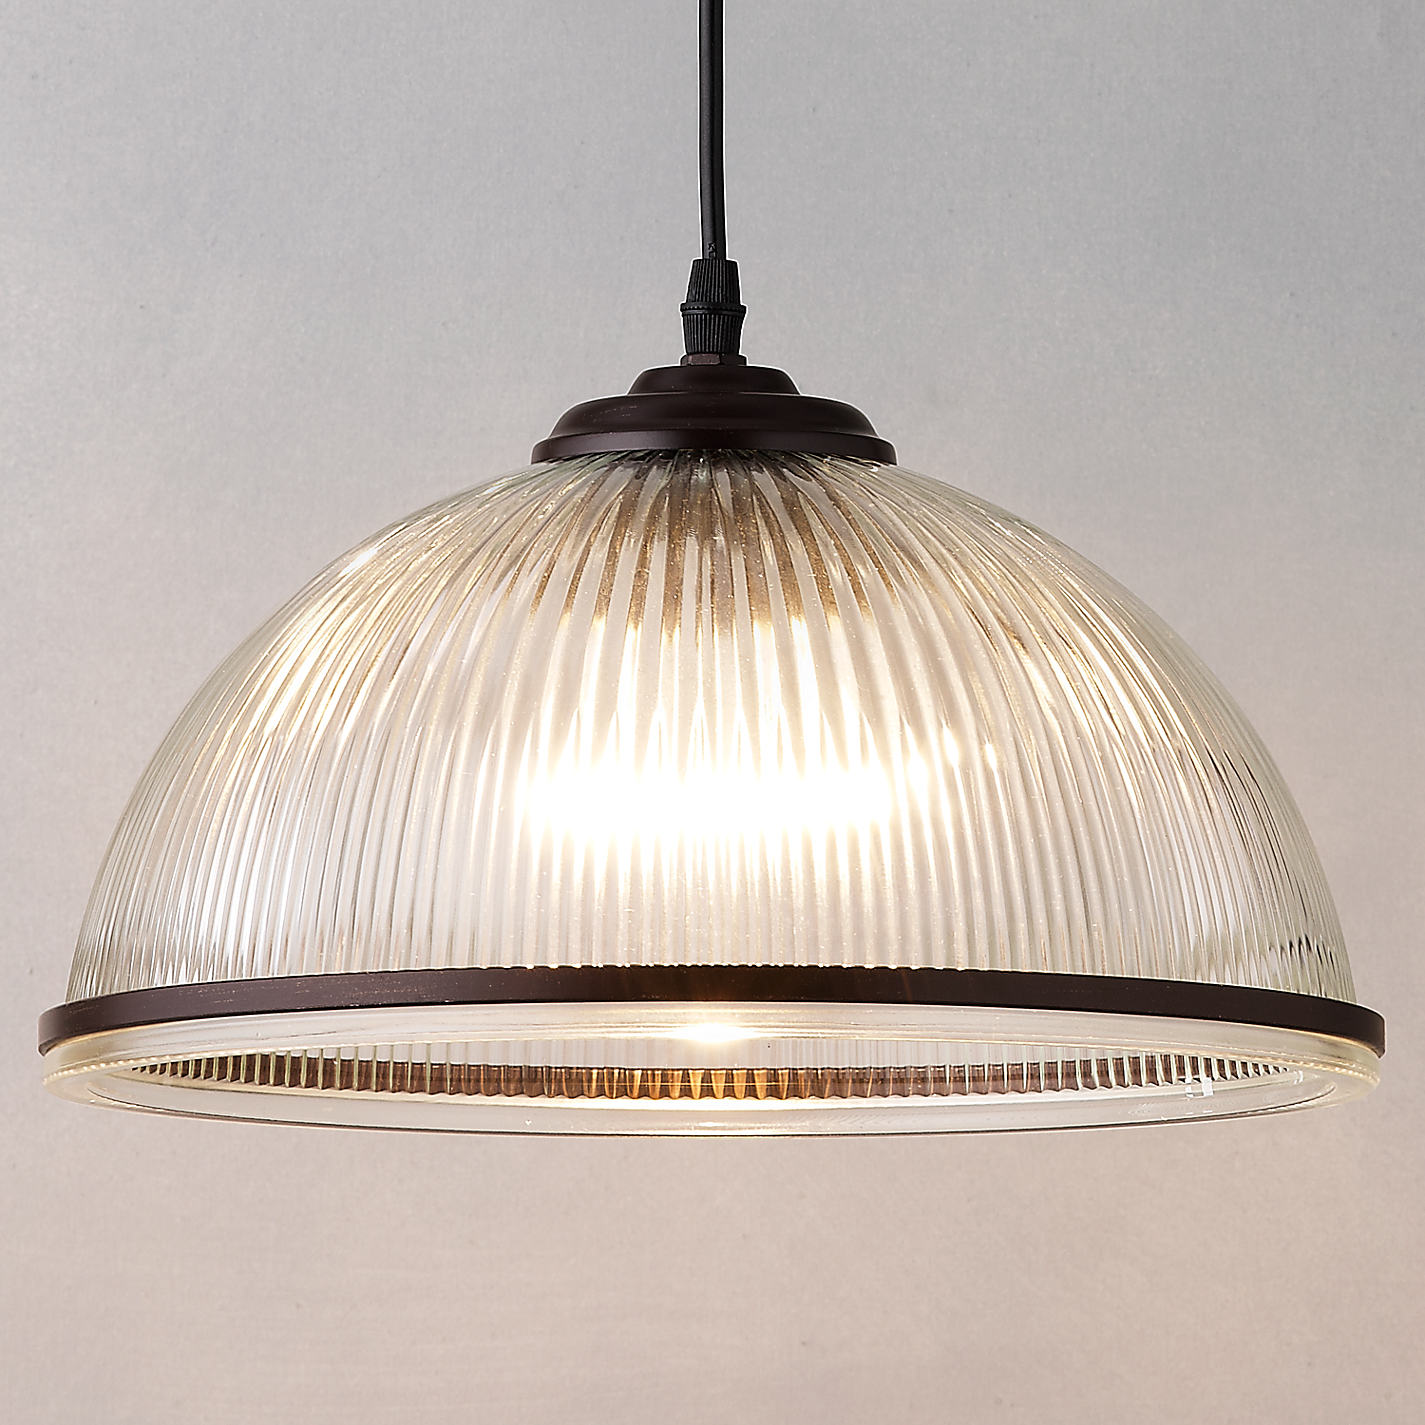 Buy john lewis tristan ceiling light john lewis buy john lewis tristan ceiling light online at johnlewis aloadofball Gallery